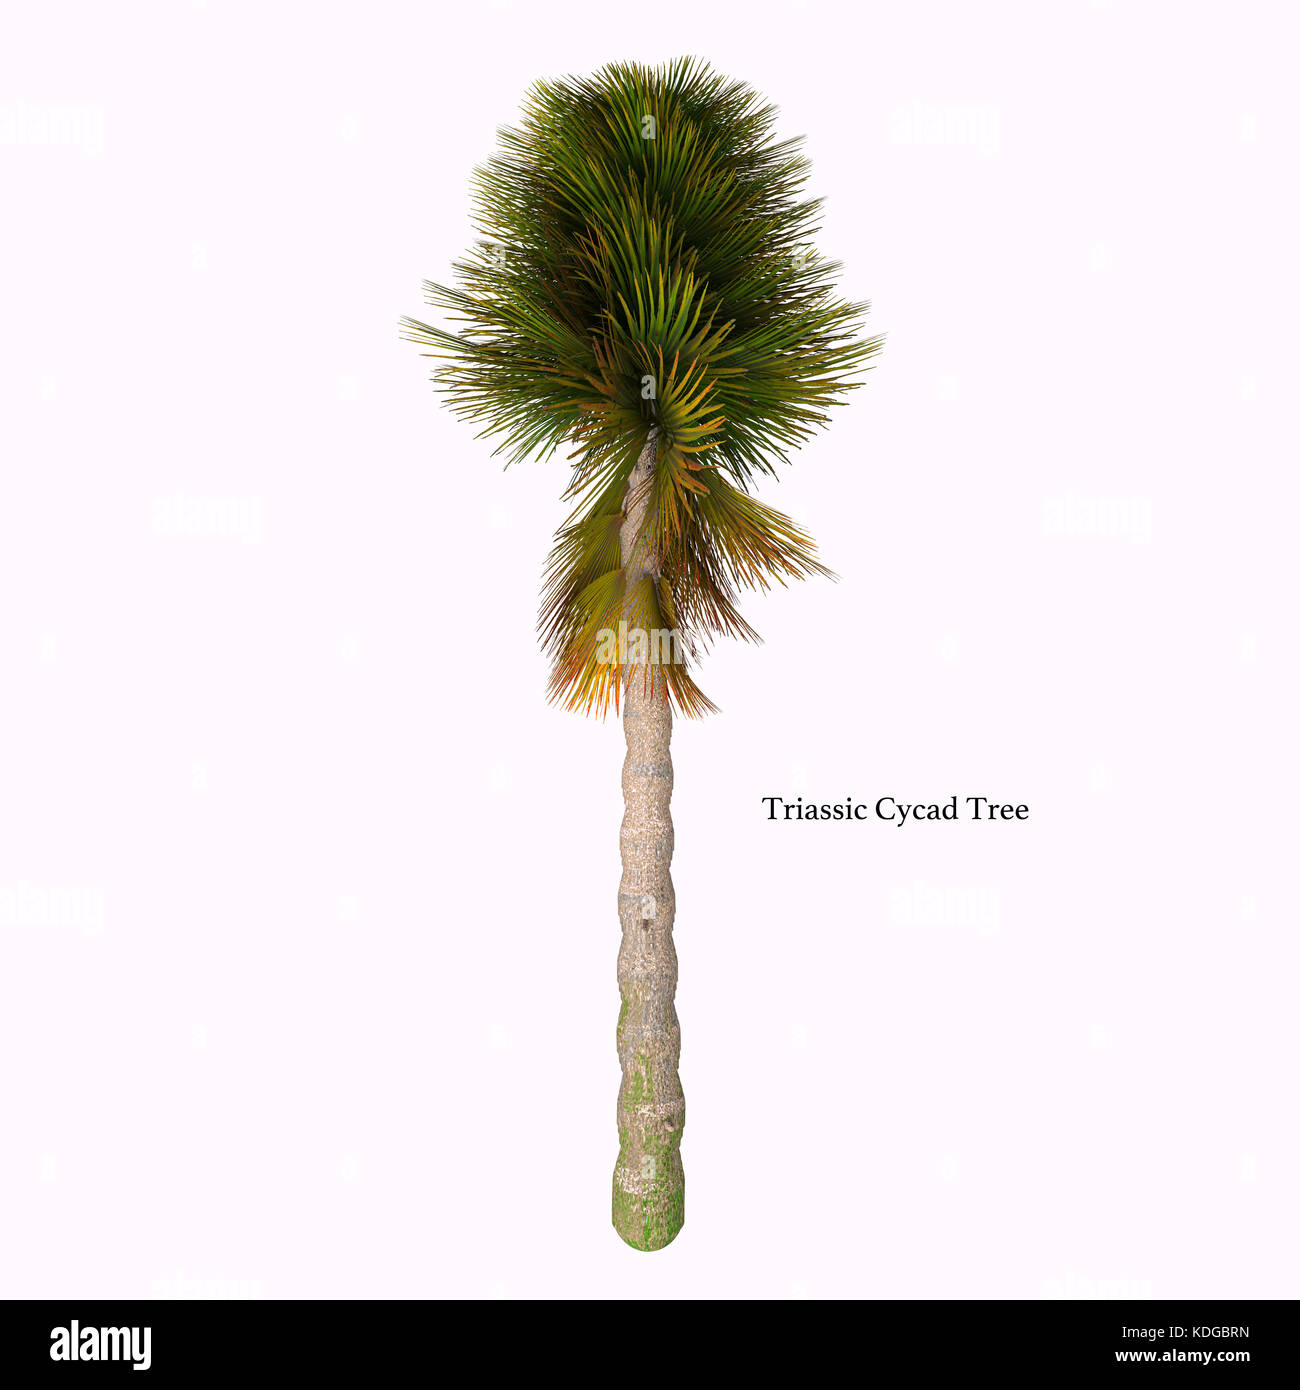 Cycad are seed plants with a long fossil history that were more abundant and more diverse than they are today. - Stock Image